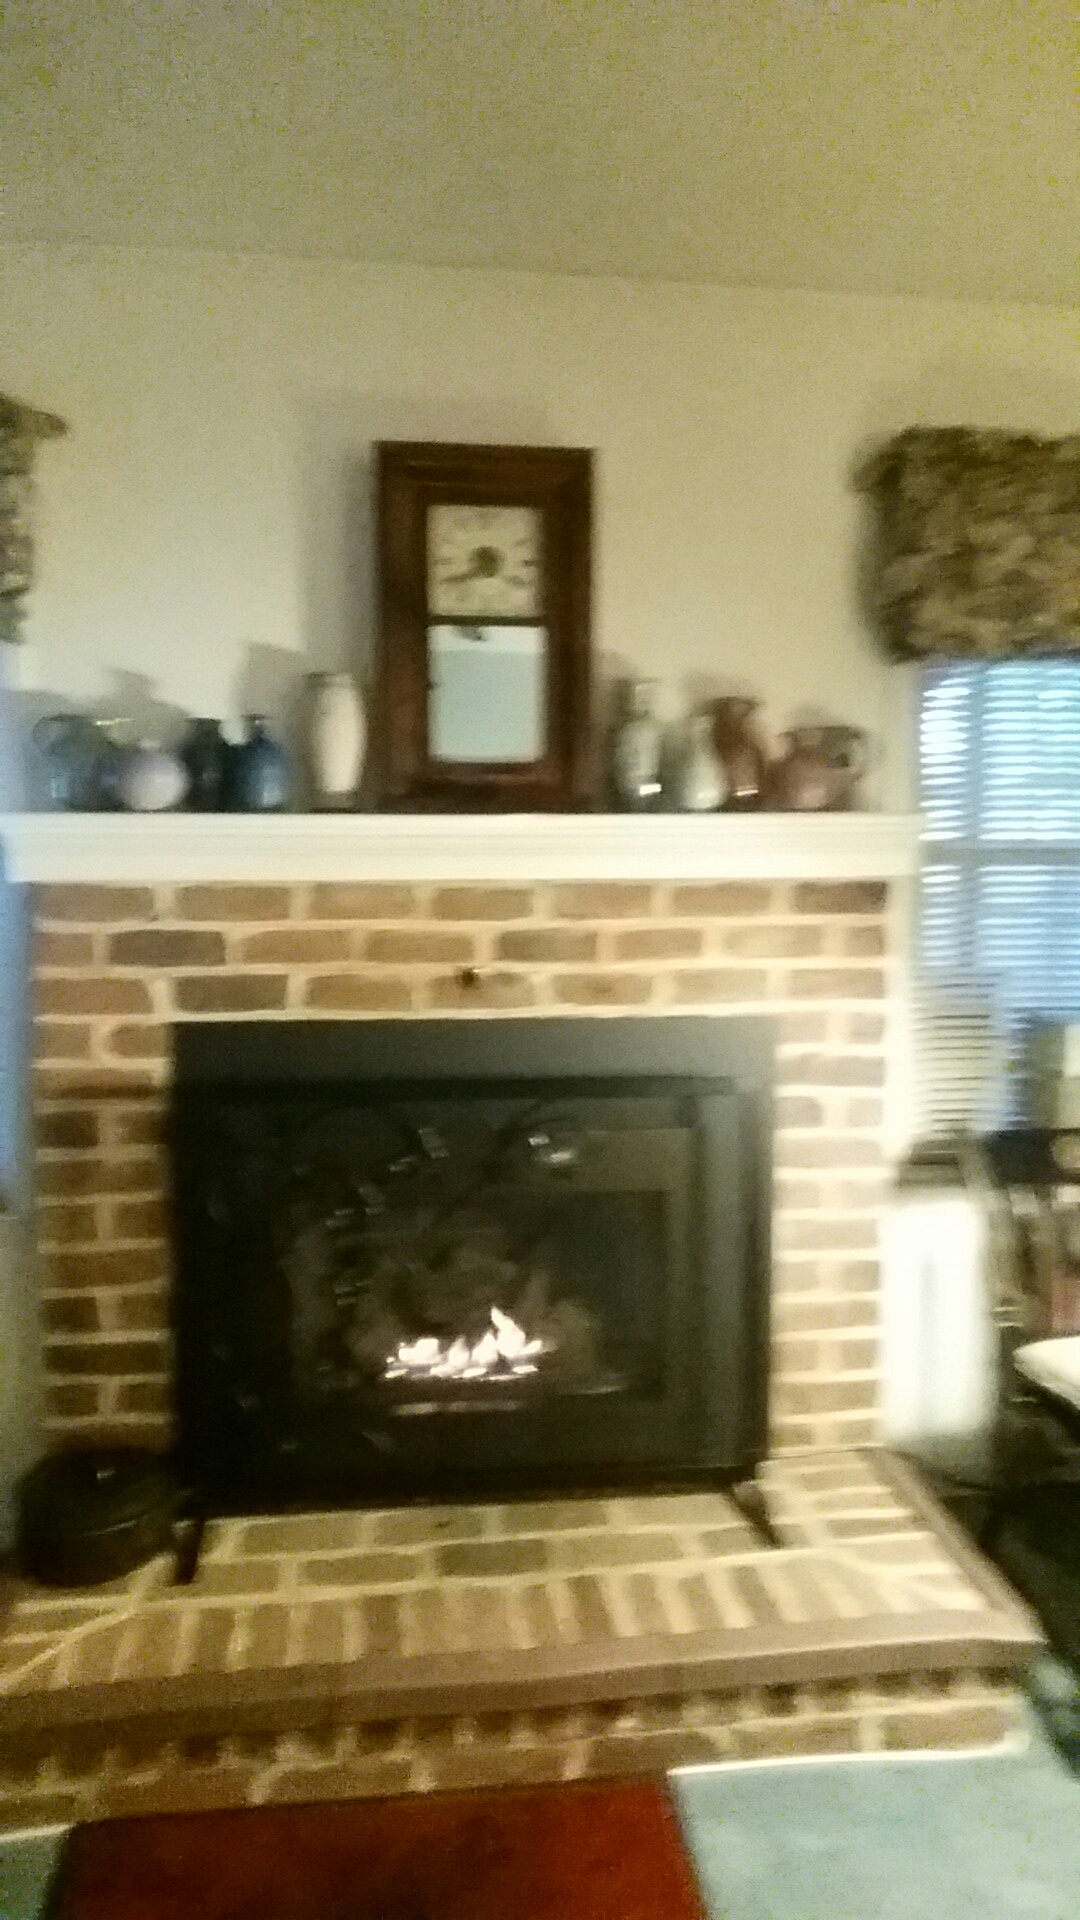 Crofton, MD - gas fireplace insert & gas log set installation repair service call crofton maryland 21114